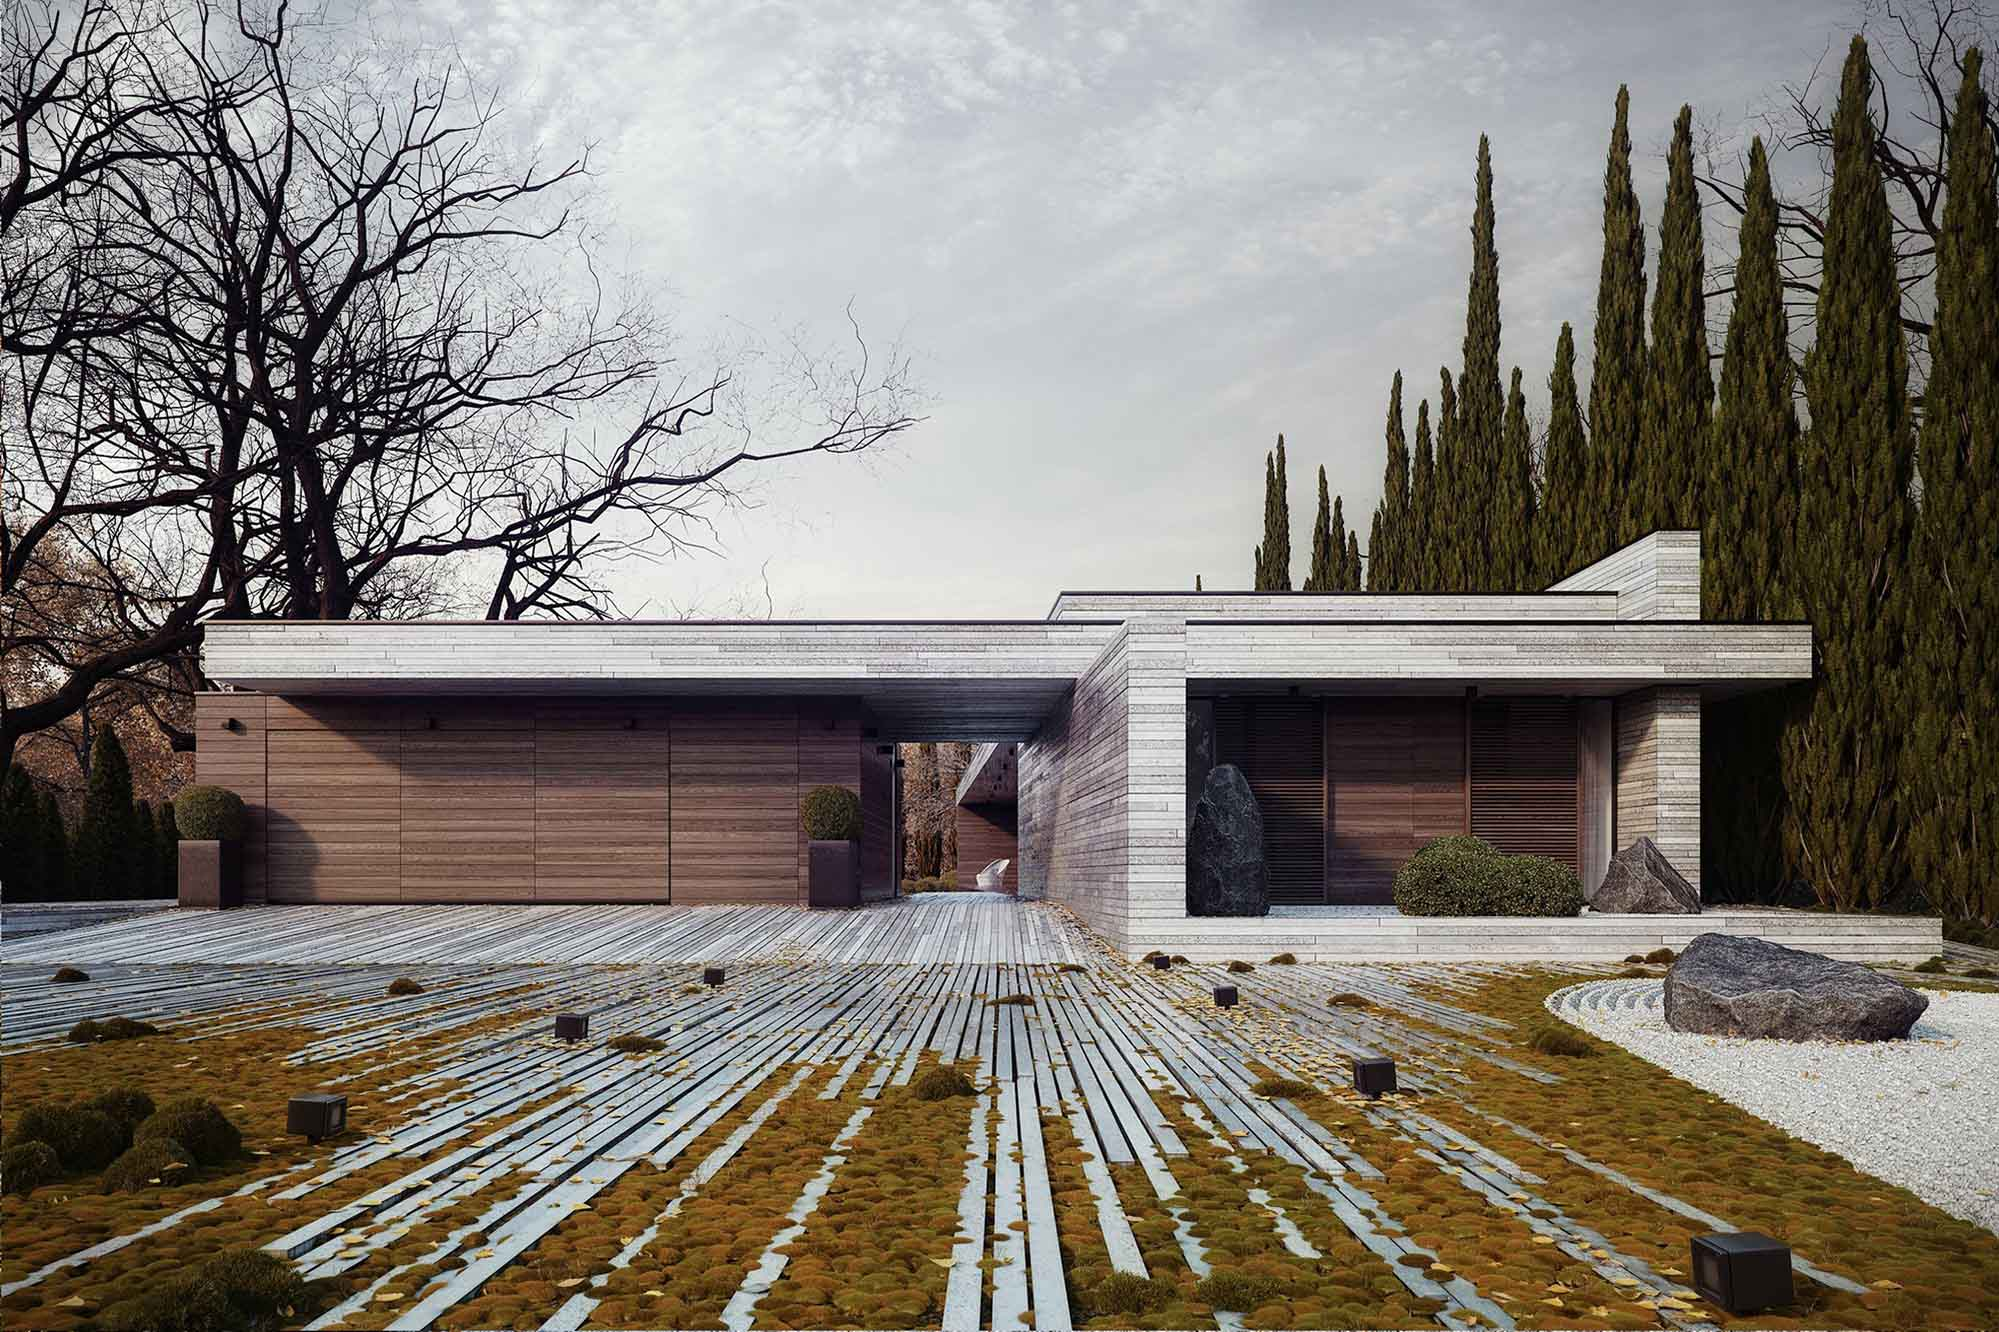 Horizontal_house_01_81.waw.pl-300dpi